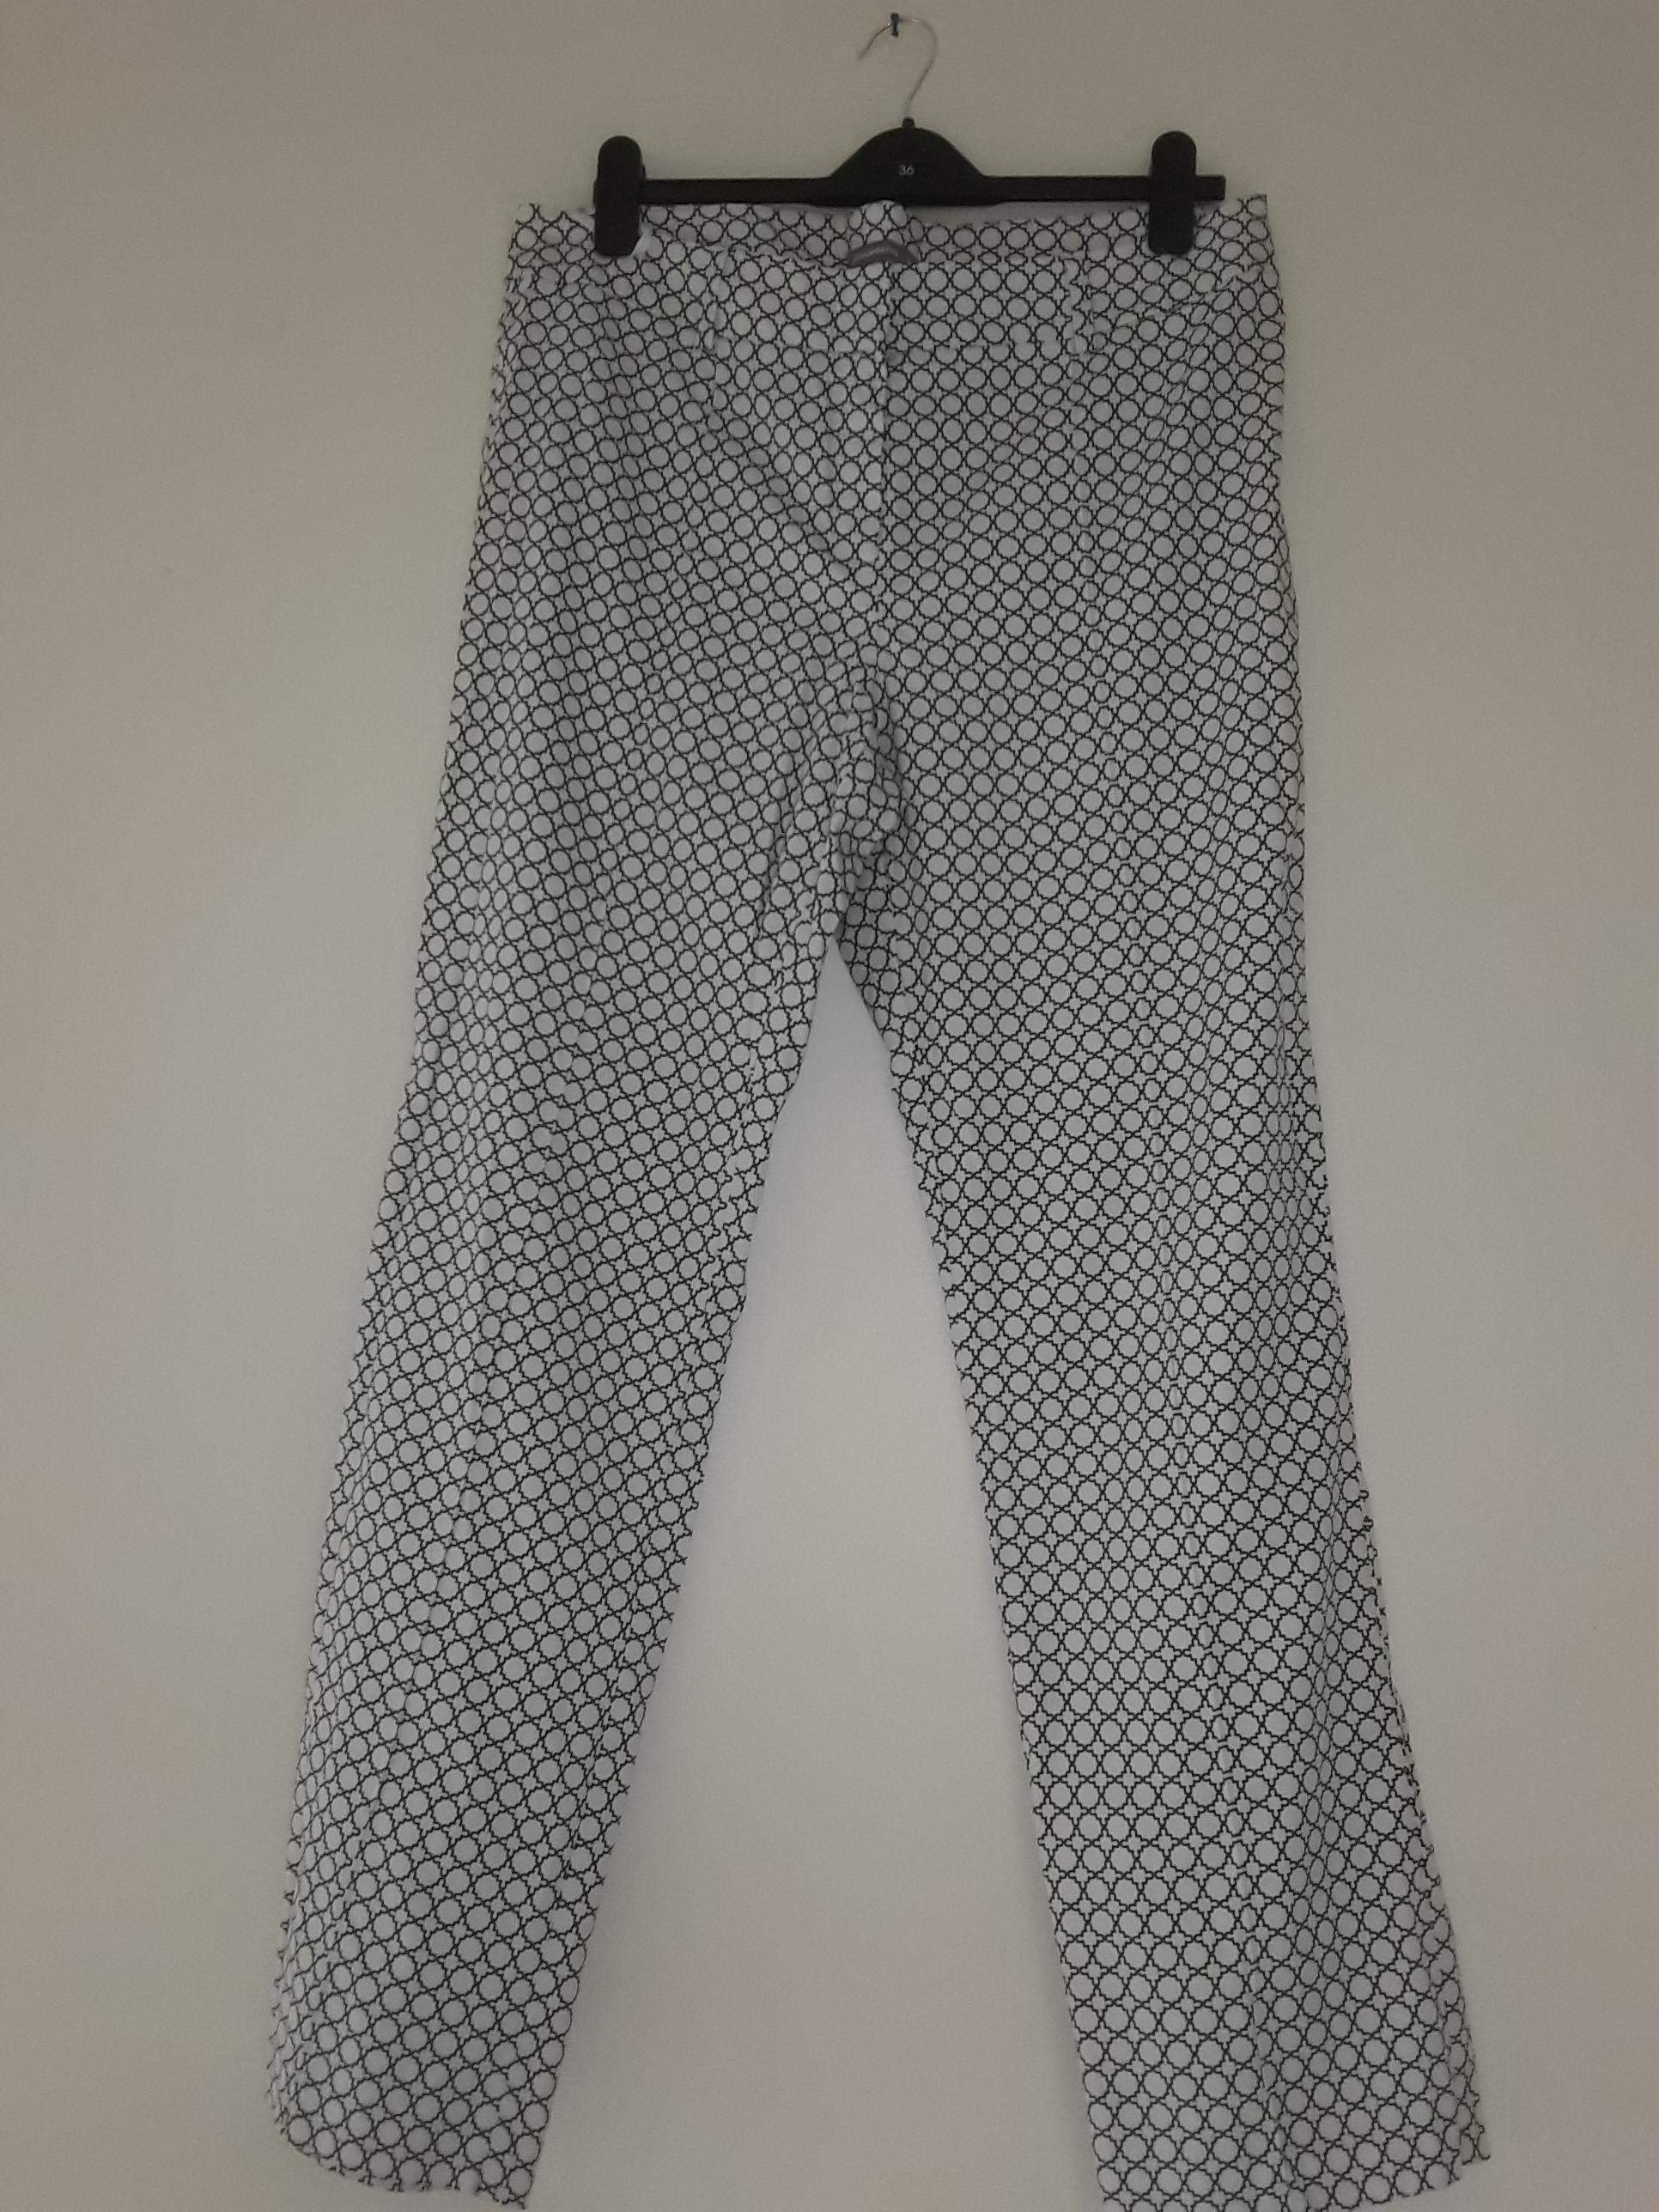 Woolworths patterned denim pants